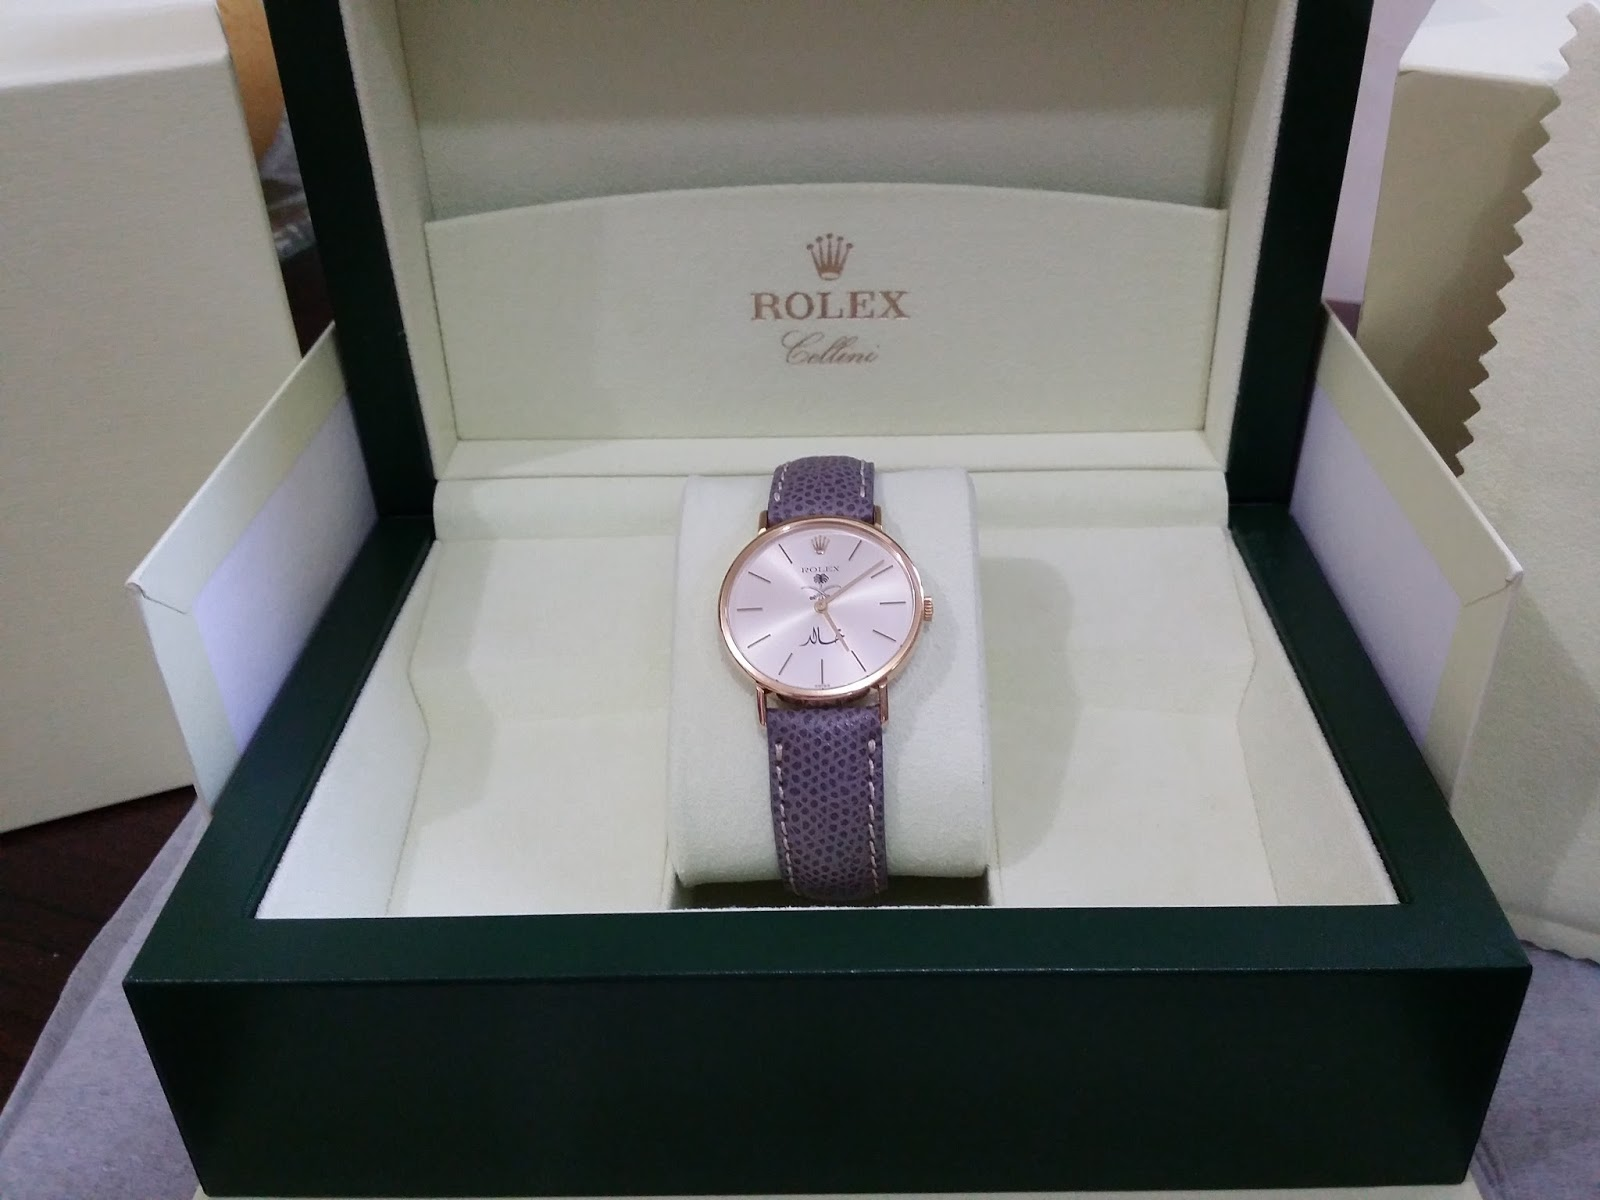 Rolex Cellini Price Hong Kong